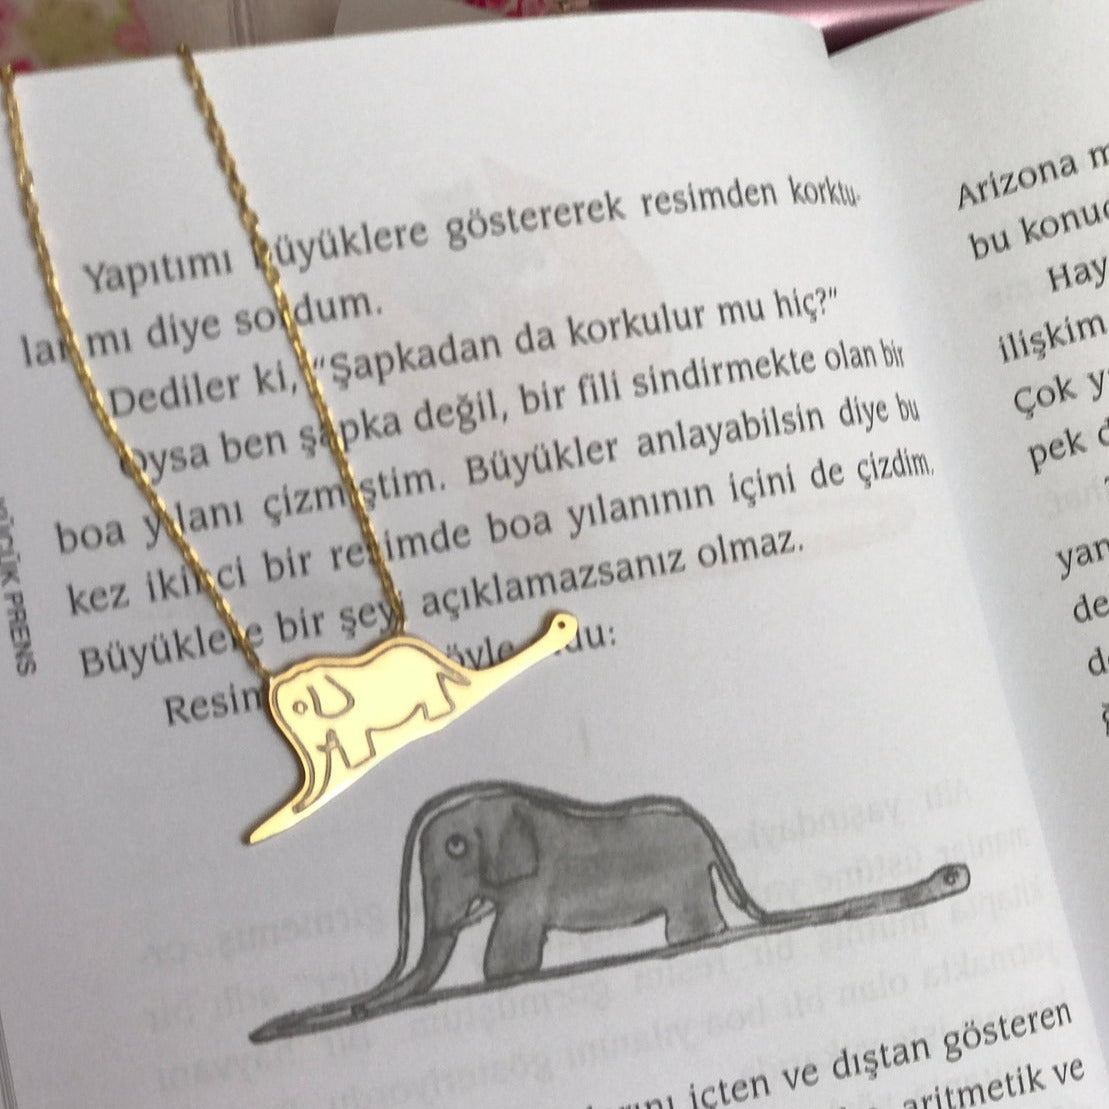 925 Sterling Silver The Little Prince Boa Constrictor Digesting An Elephant Necklace